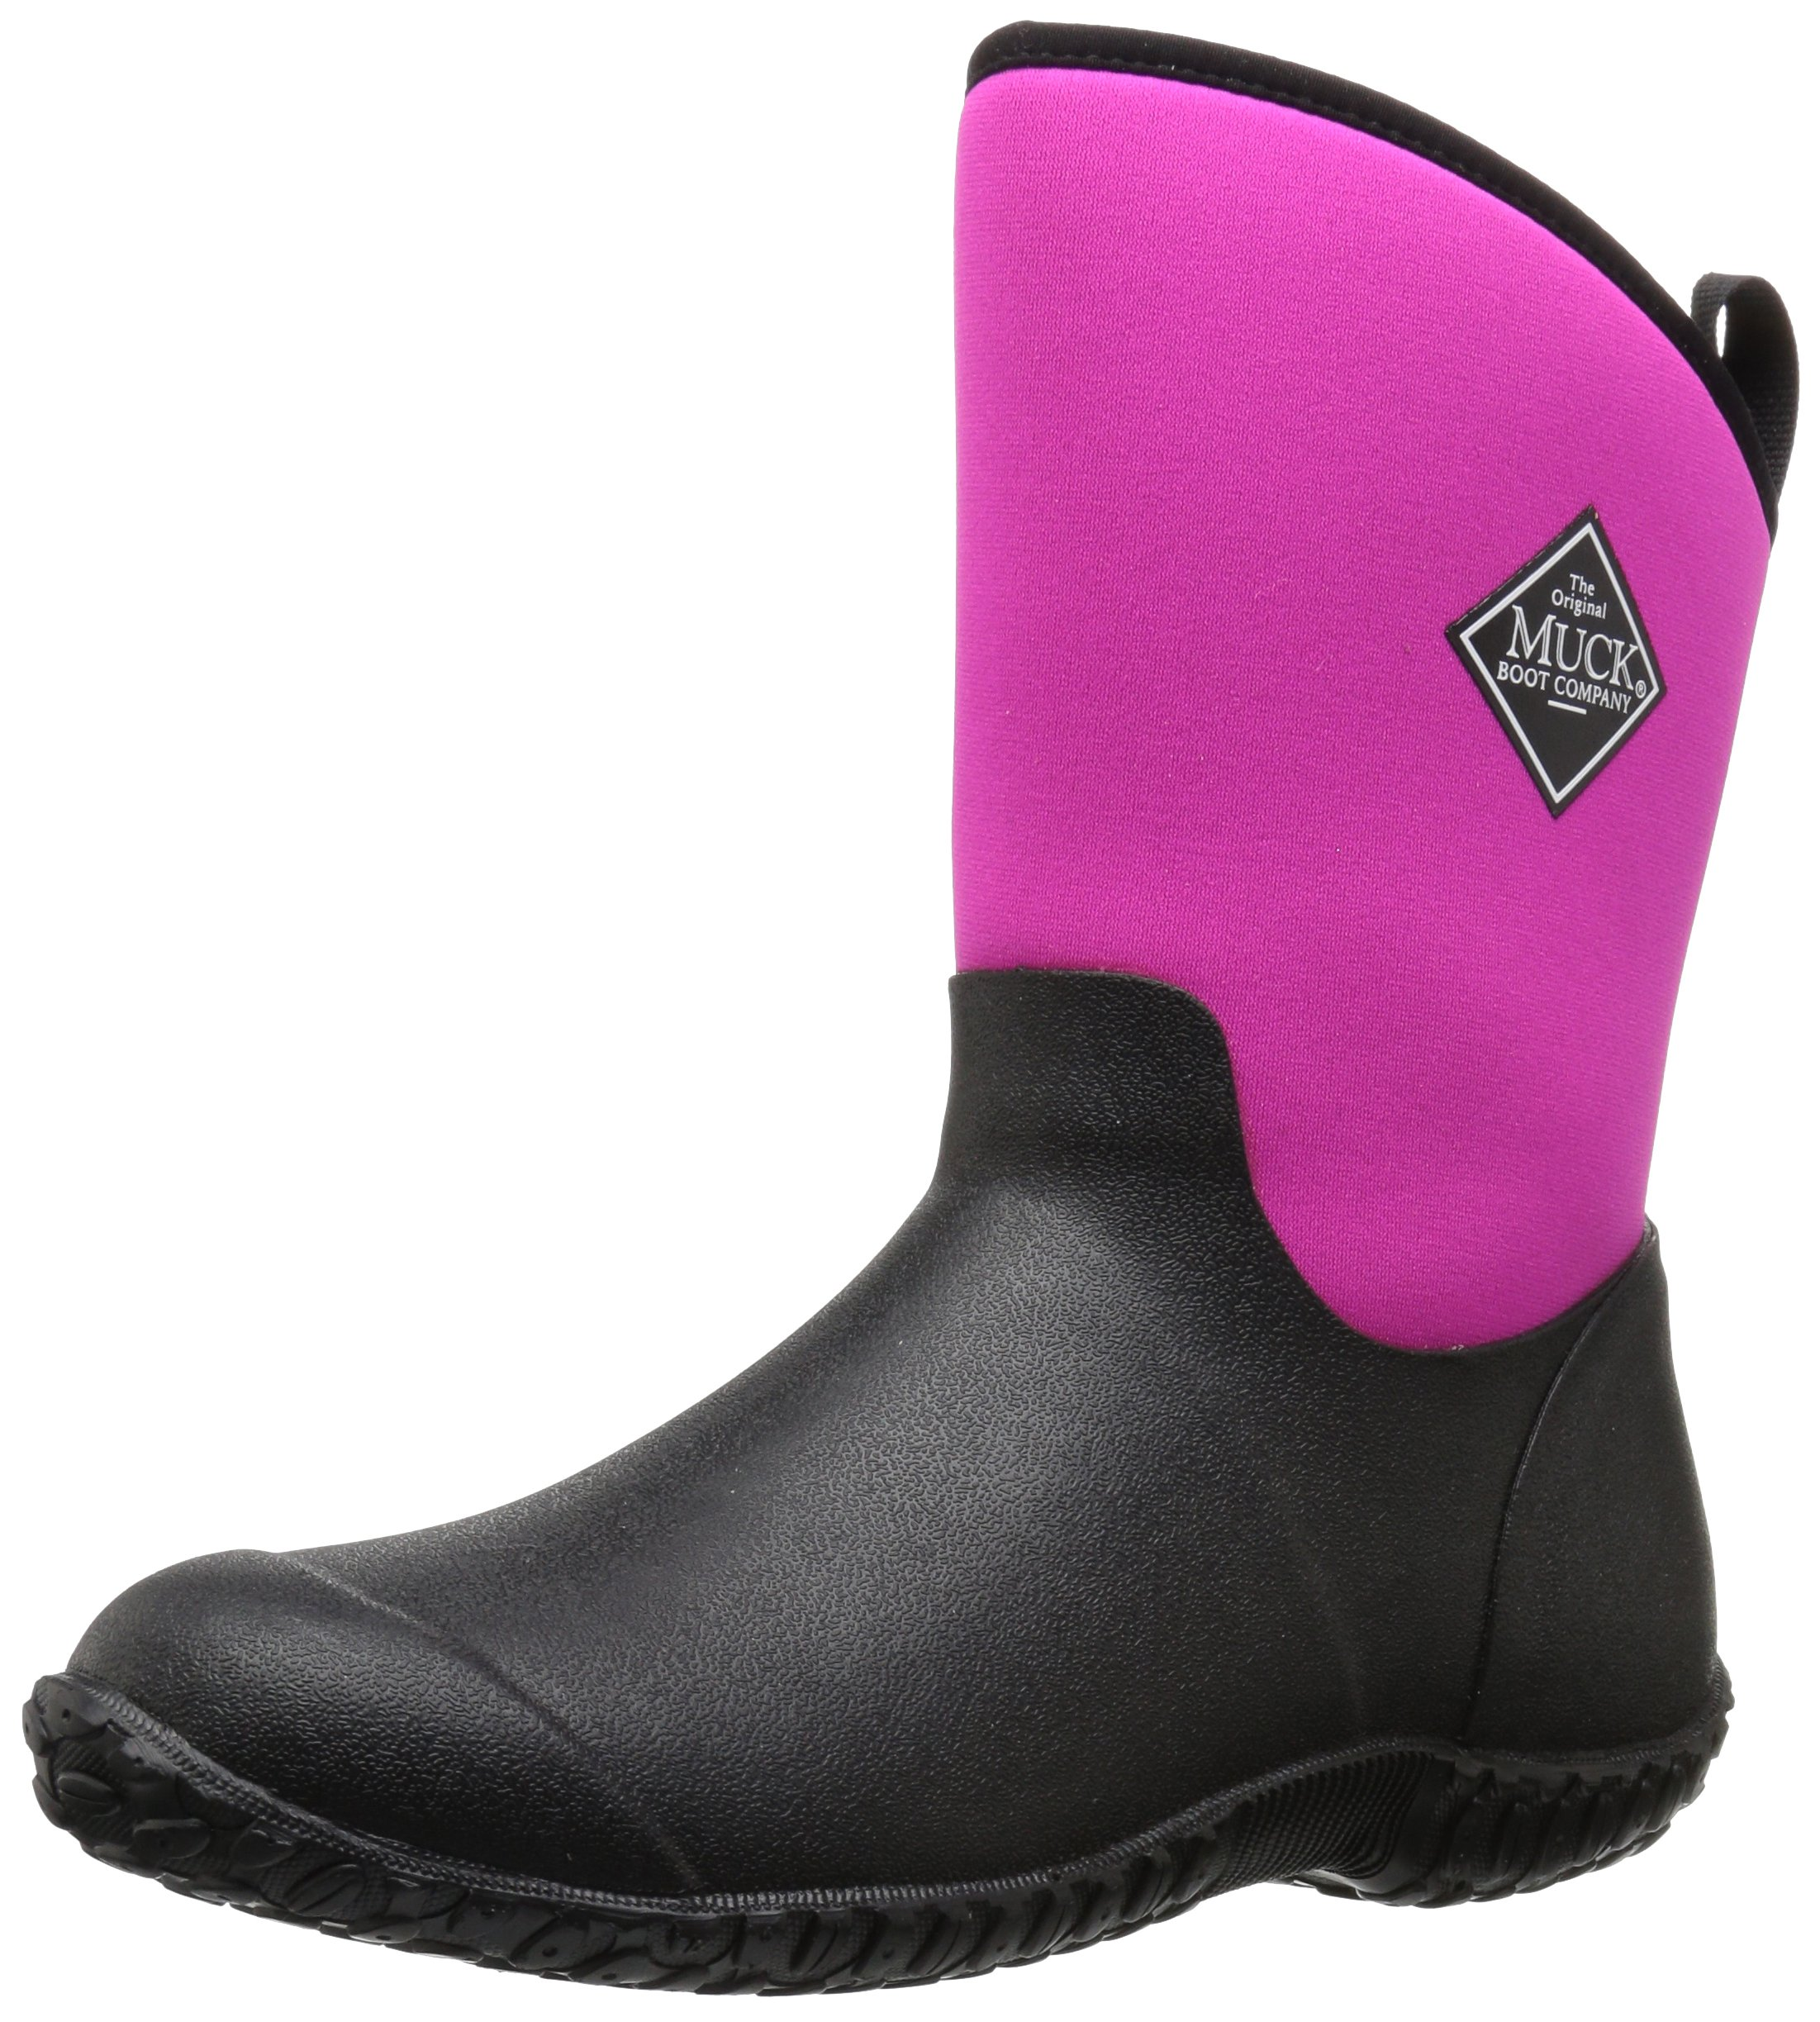 Muck Boot Women's Muckster 2 Mid Snow Boot, Black/Pink, 8 B US by Muck Boot